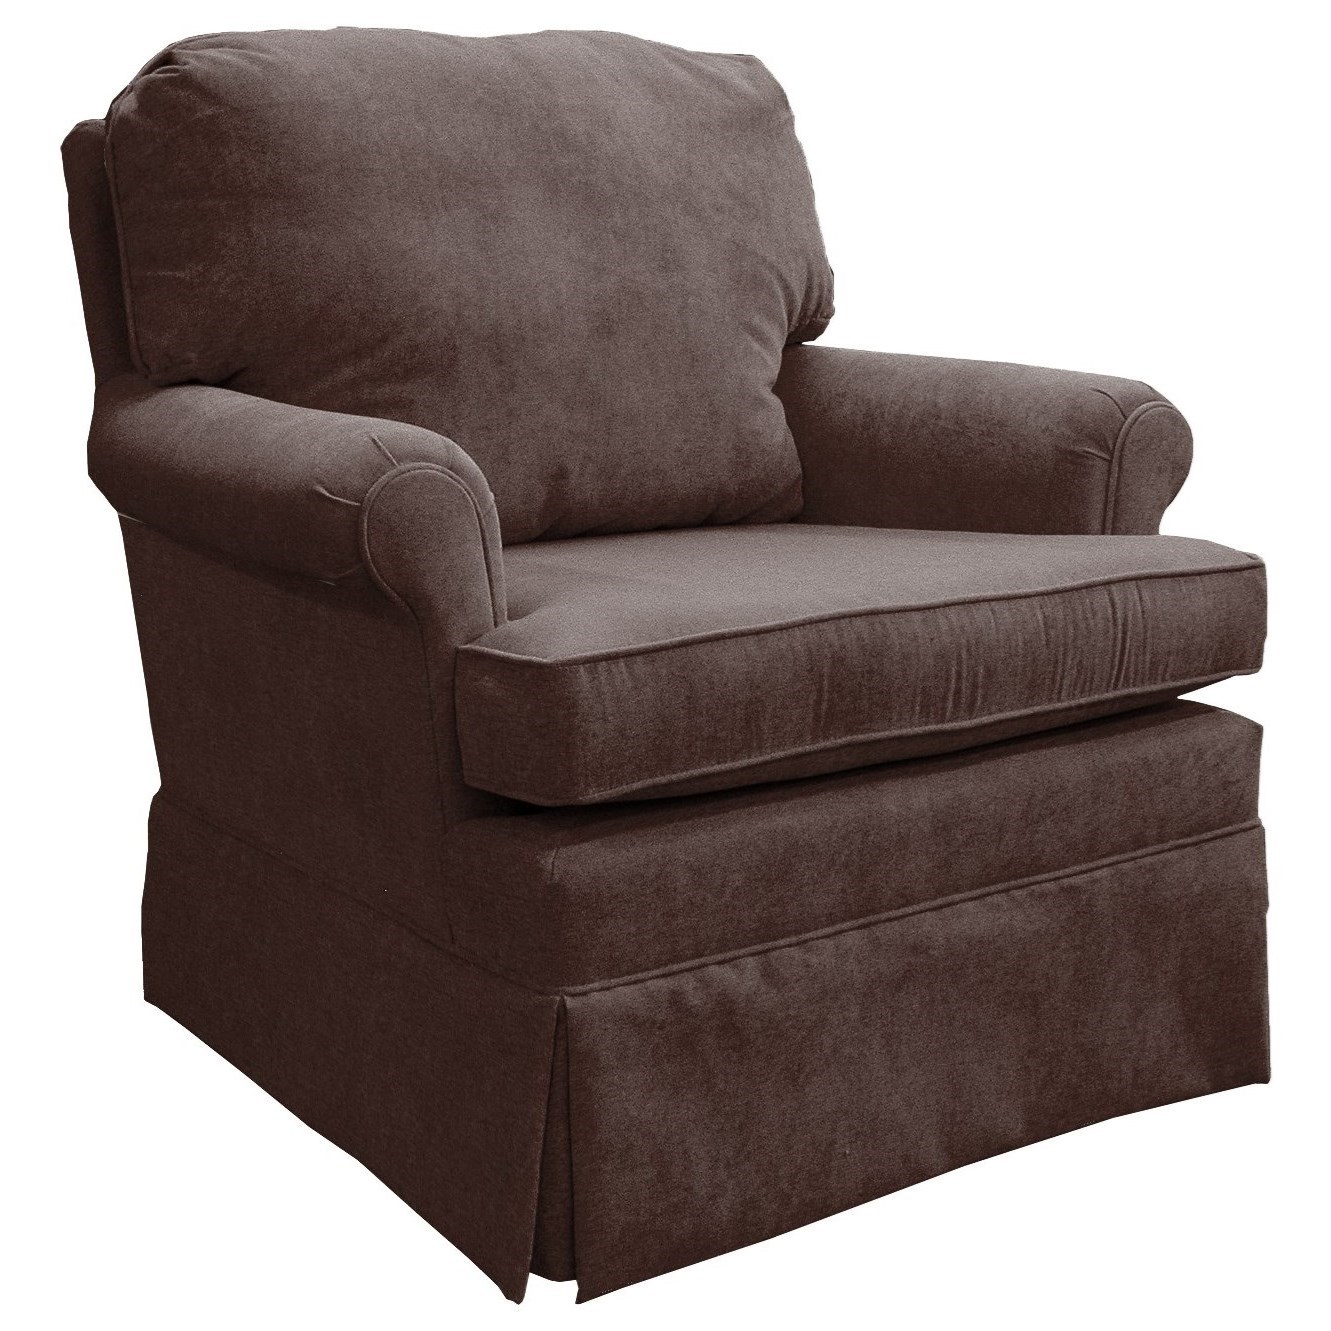 Patoka Swivel Rocking Club Chair  by Best Home Furnishings at Lapeer Furniture & Mattress Center